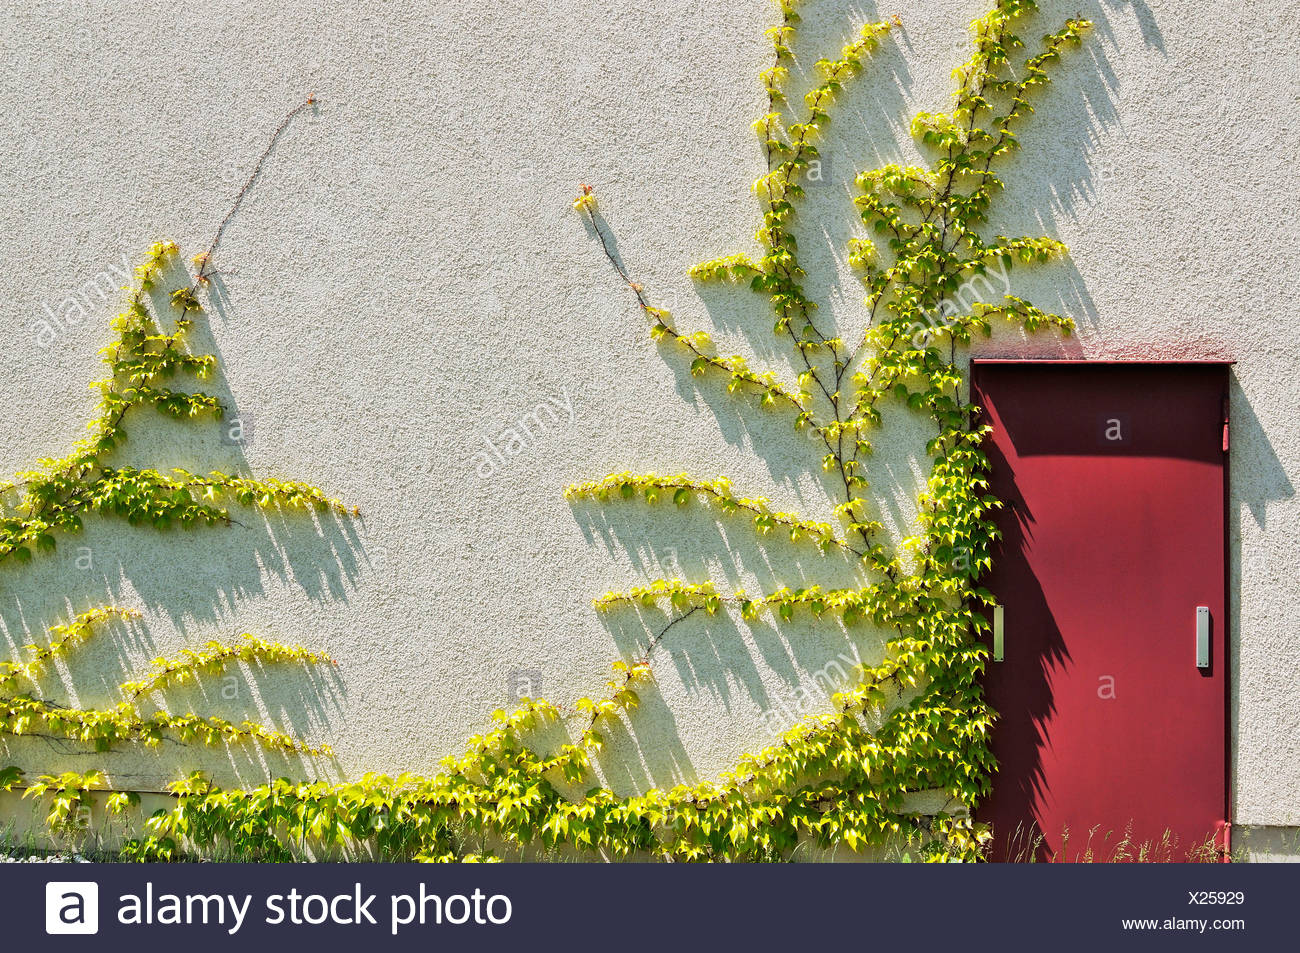 Japanese creeper, Boston ivy, Grape ivy, Japanese ivy, and woodbine (Parthenocissus tricuspidata) on a house wall, Munich - Stock Image